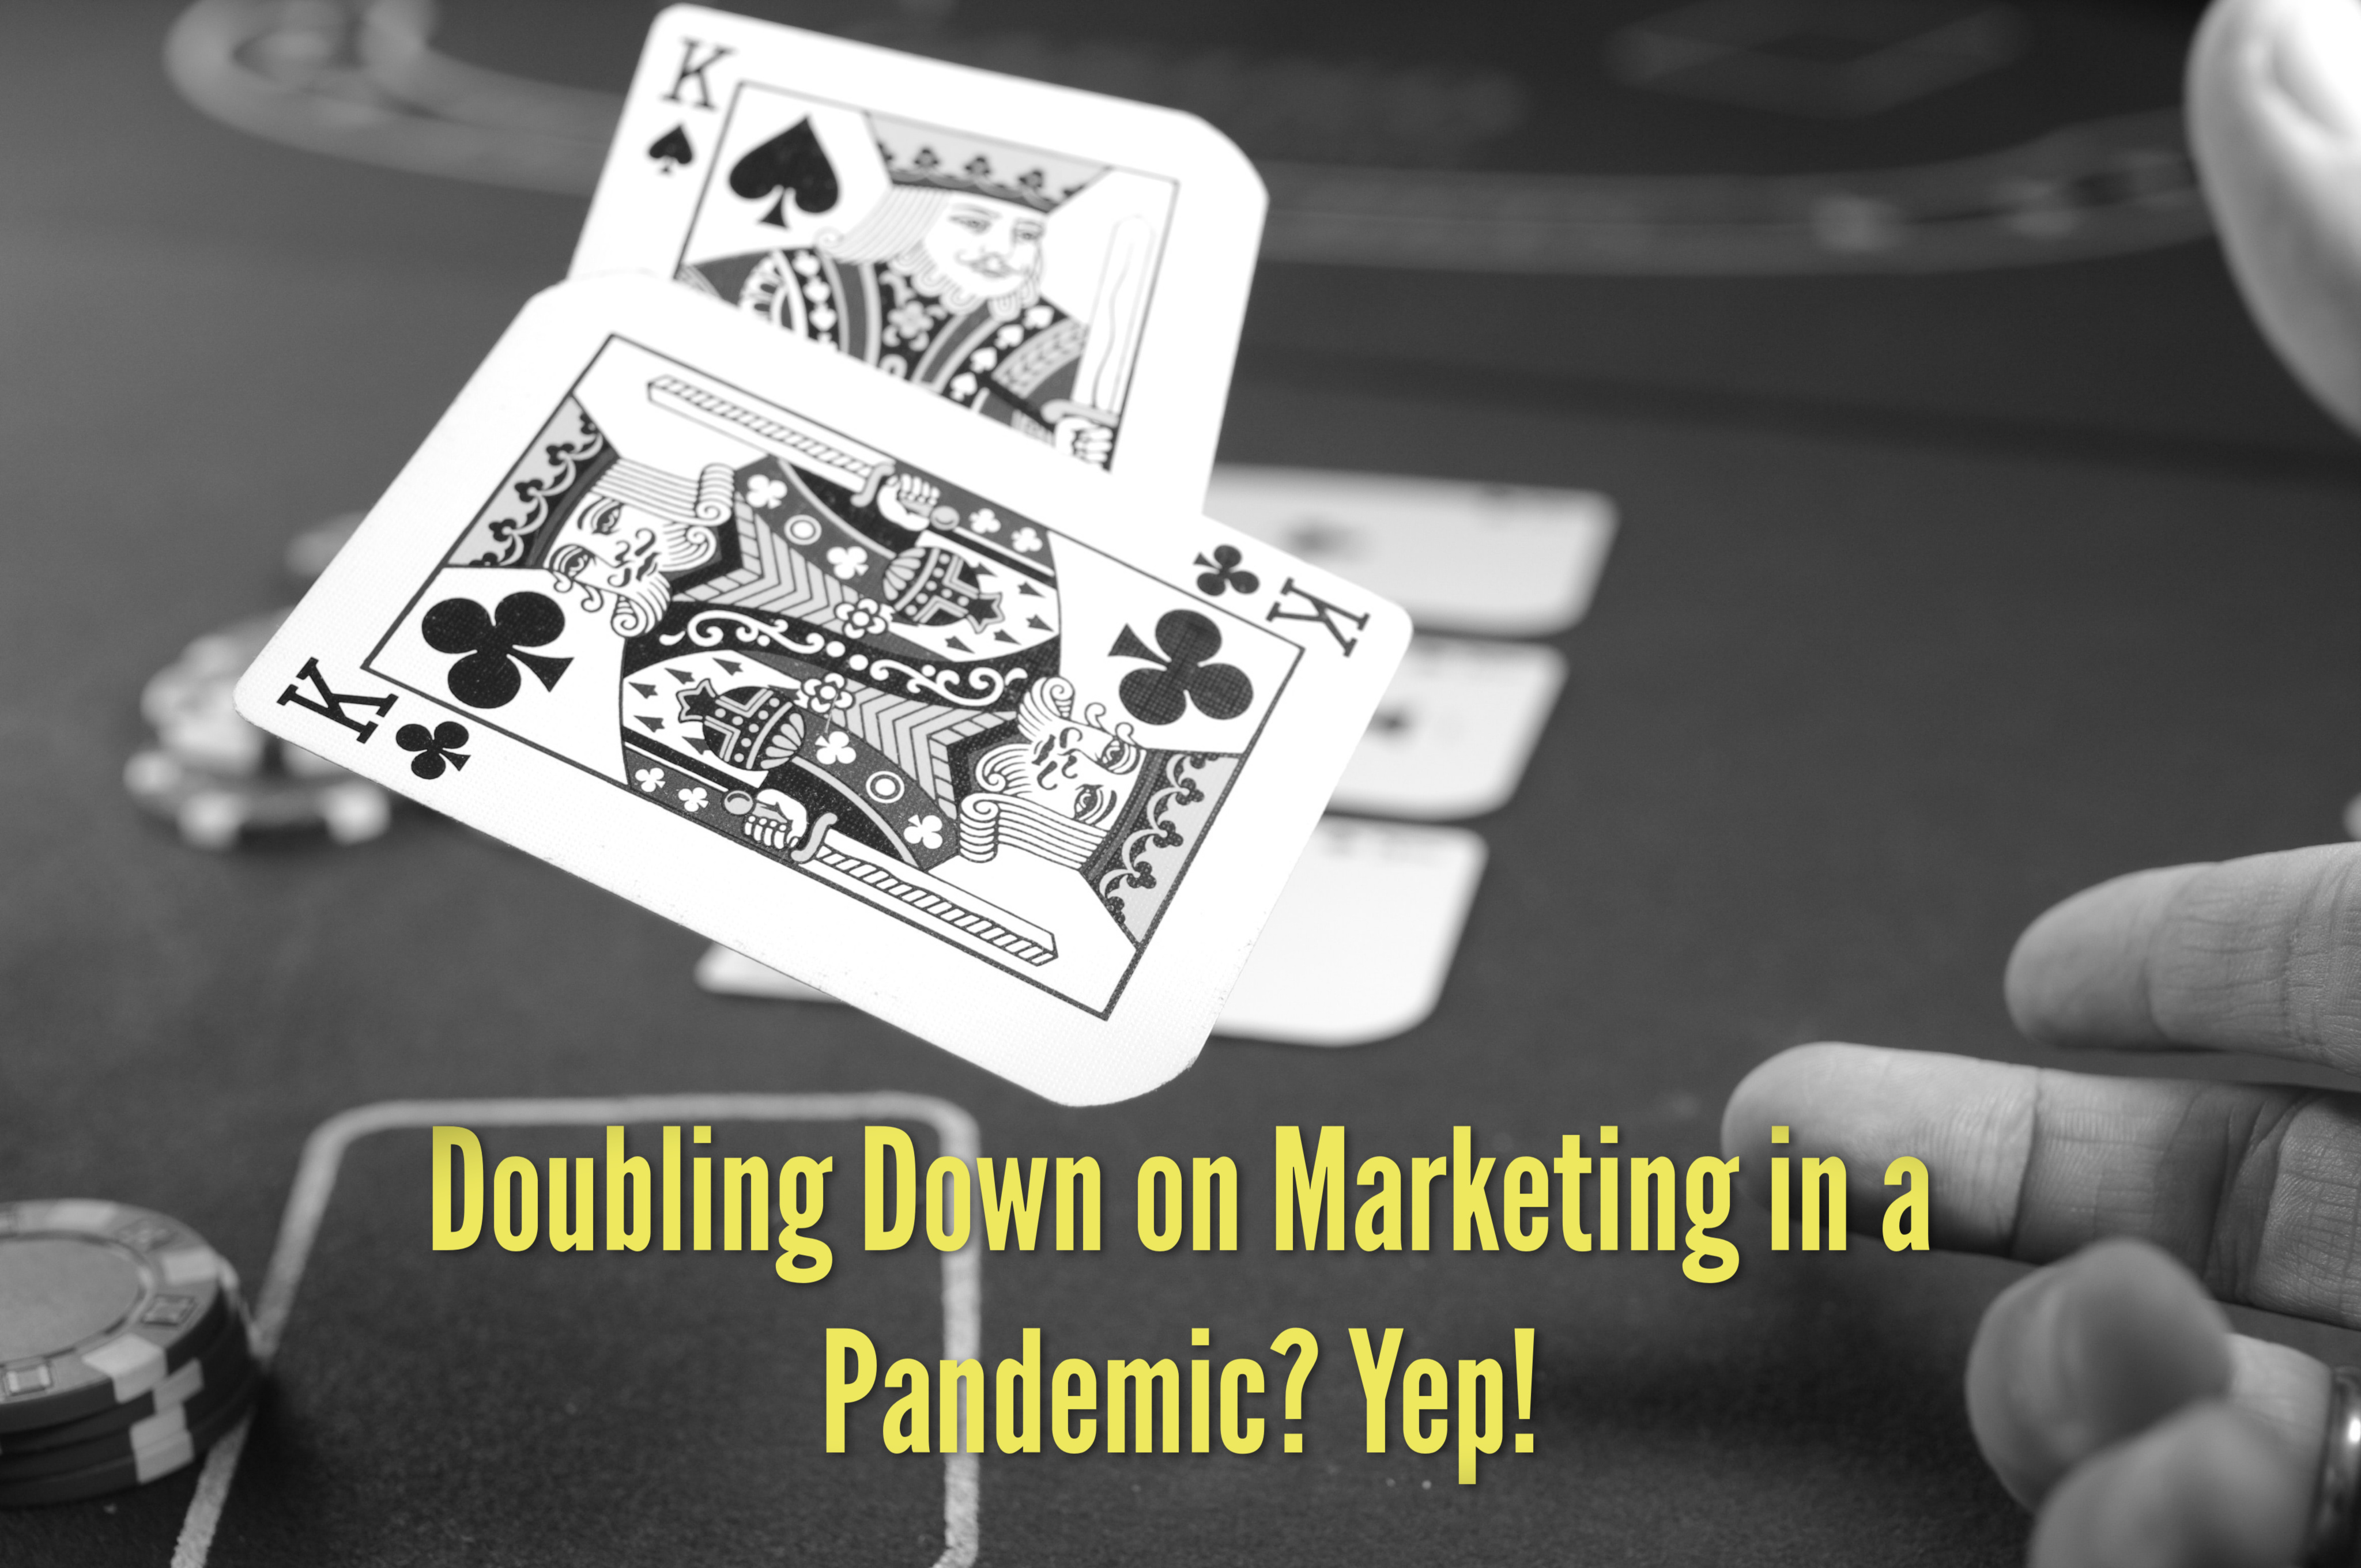 Doubling Down on Marketing in a Pandemic? Yep!